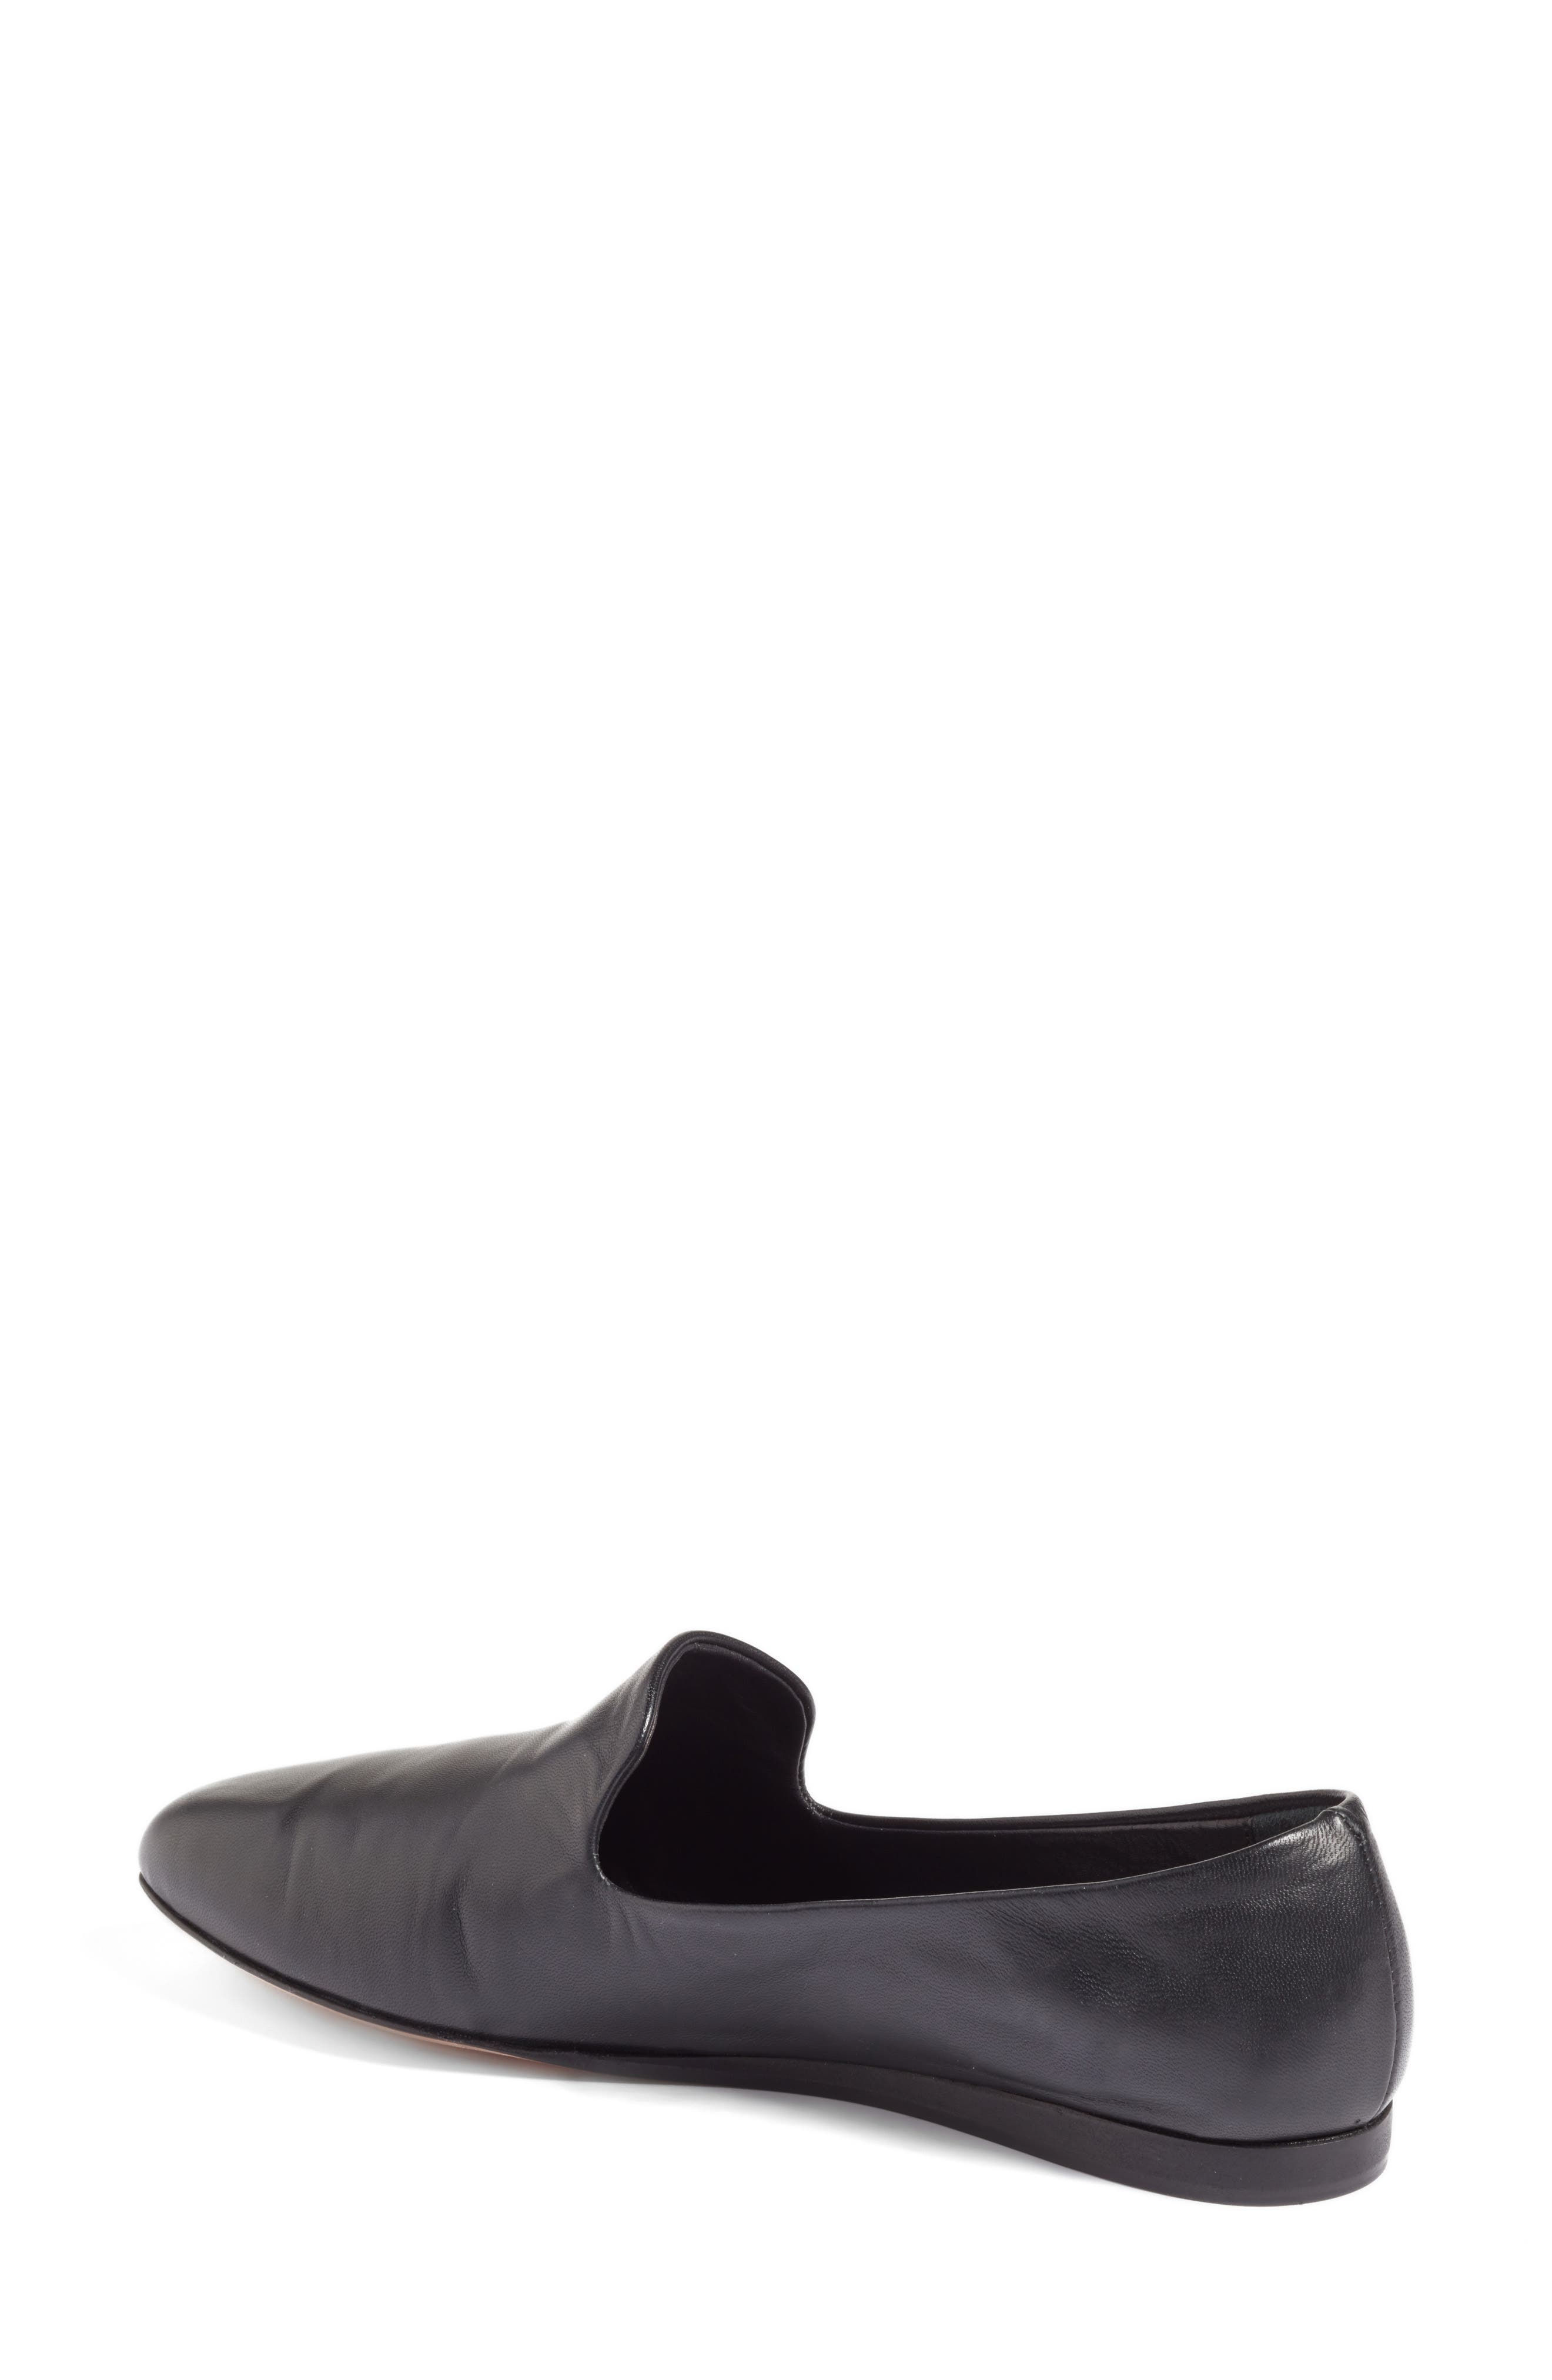 Griffin Pointy Toe Loafer,                             Alternate thumbnail 2, color,                             BLACK